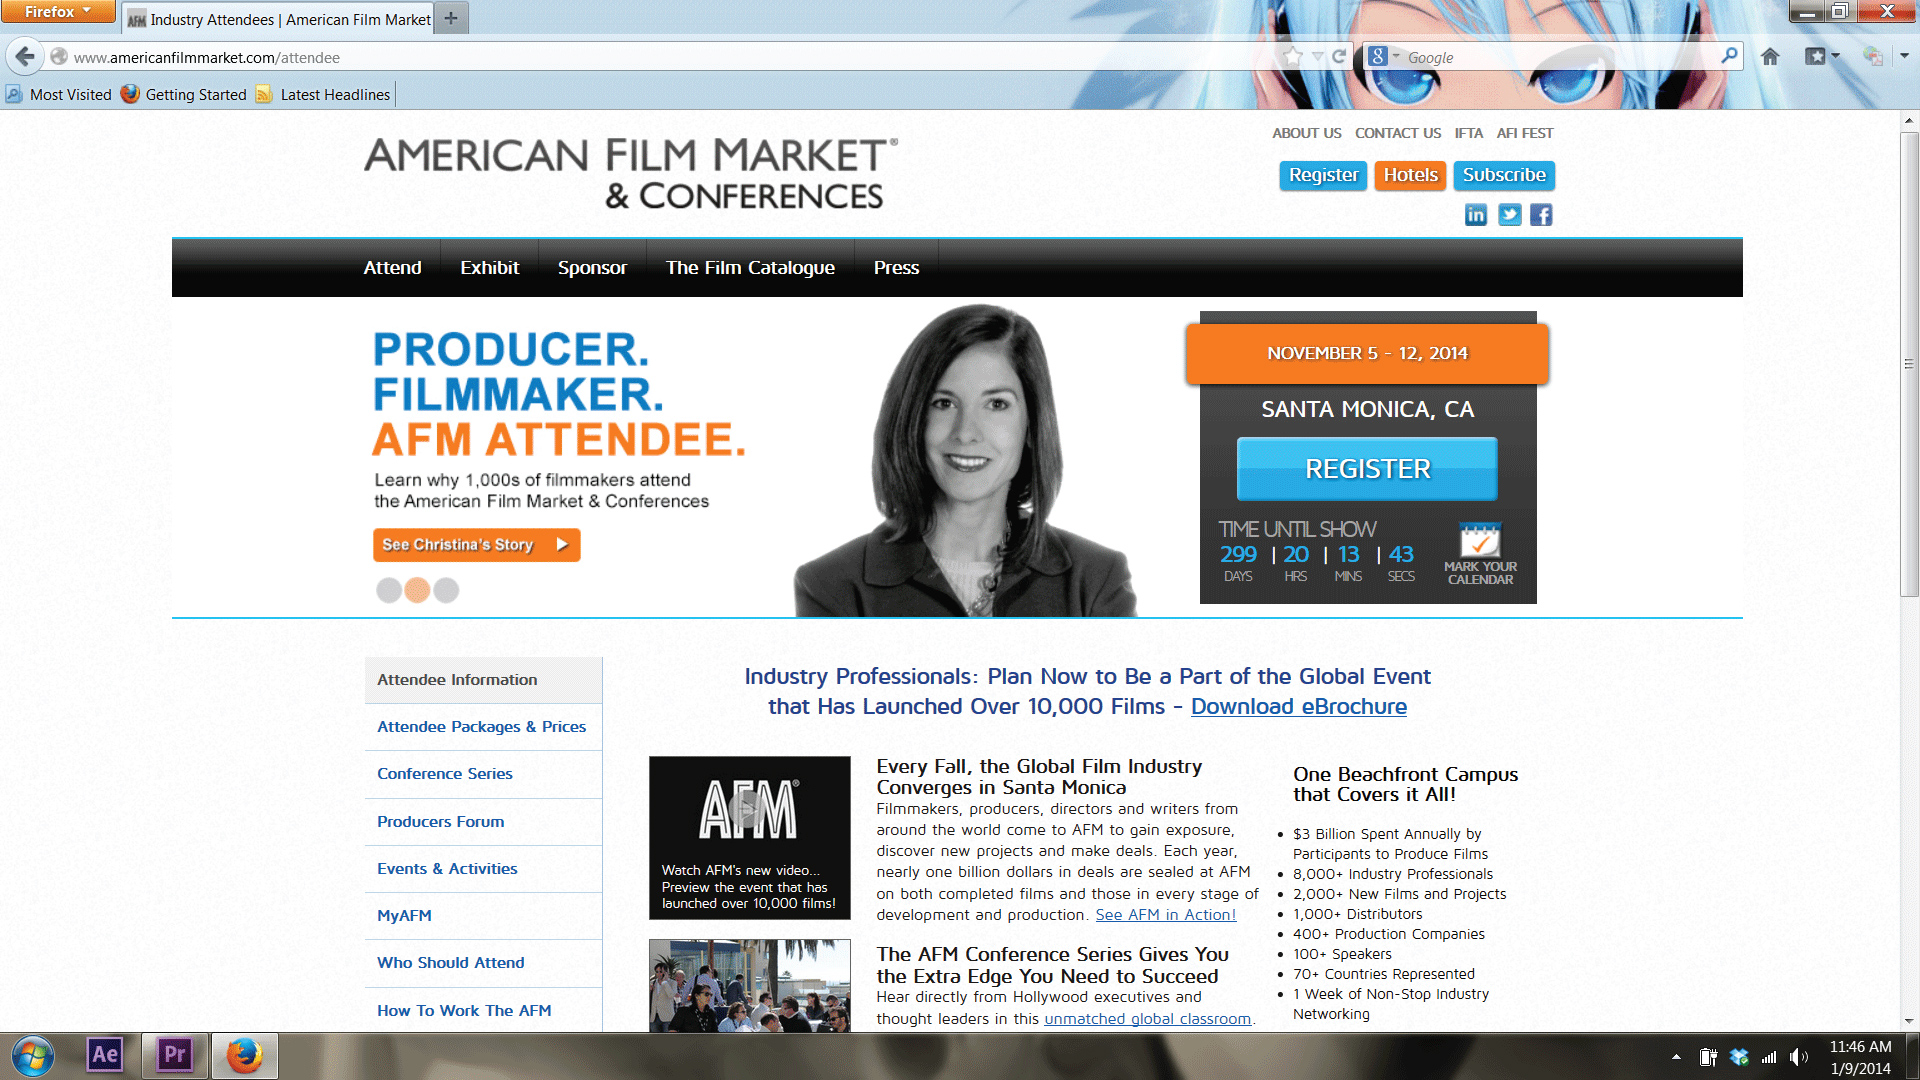 American Film Market & Conference